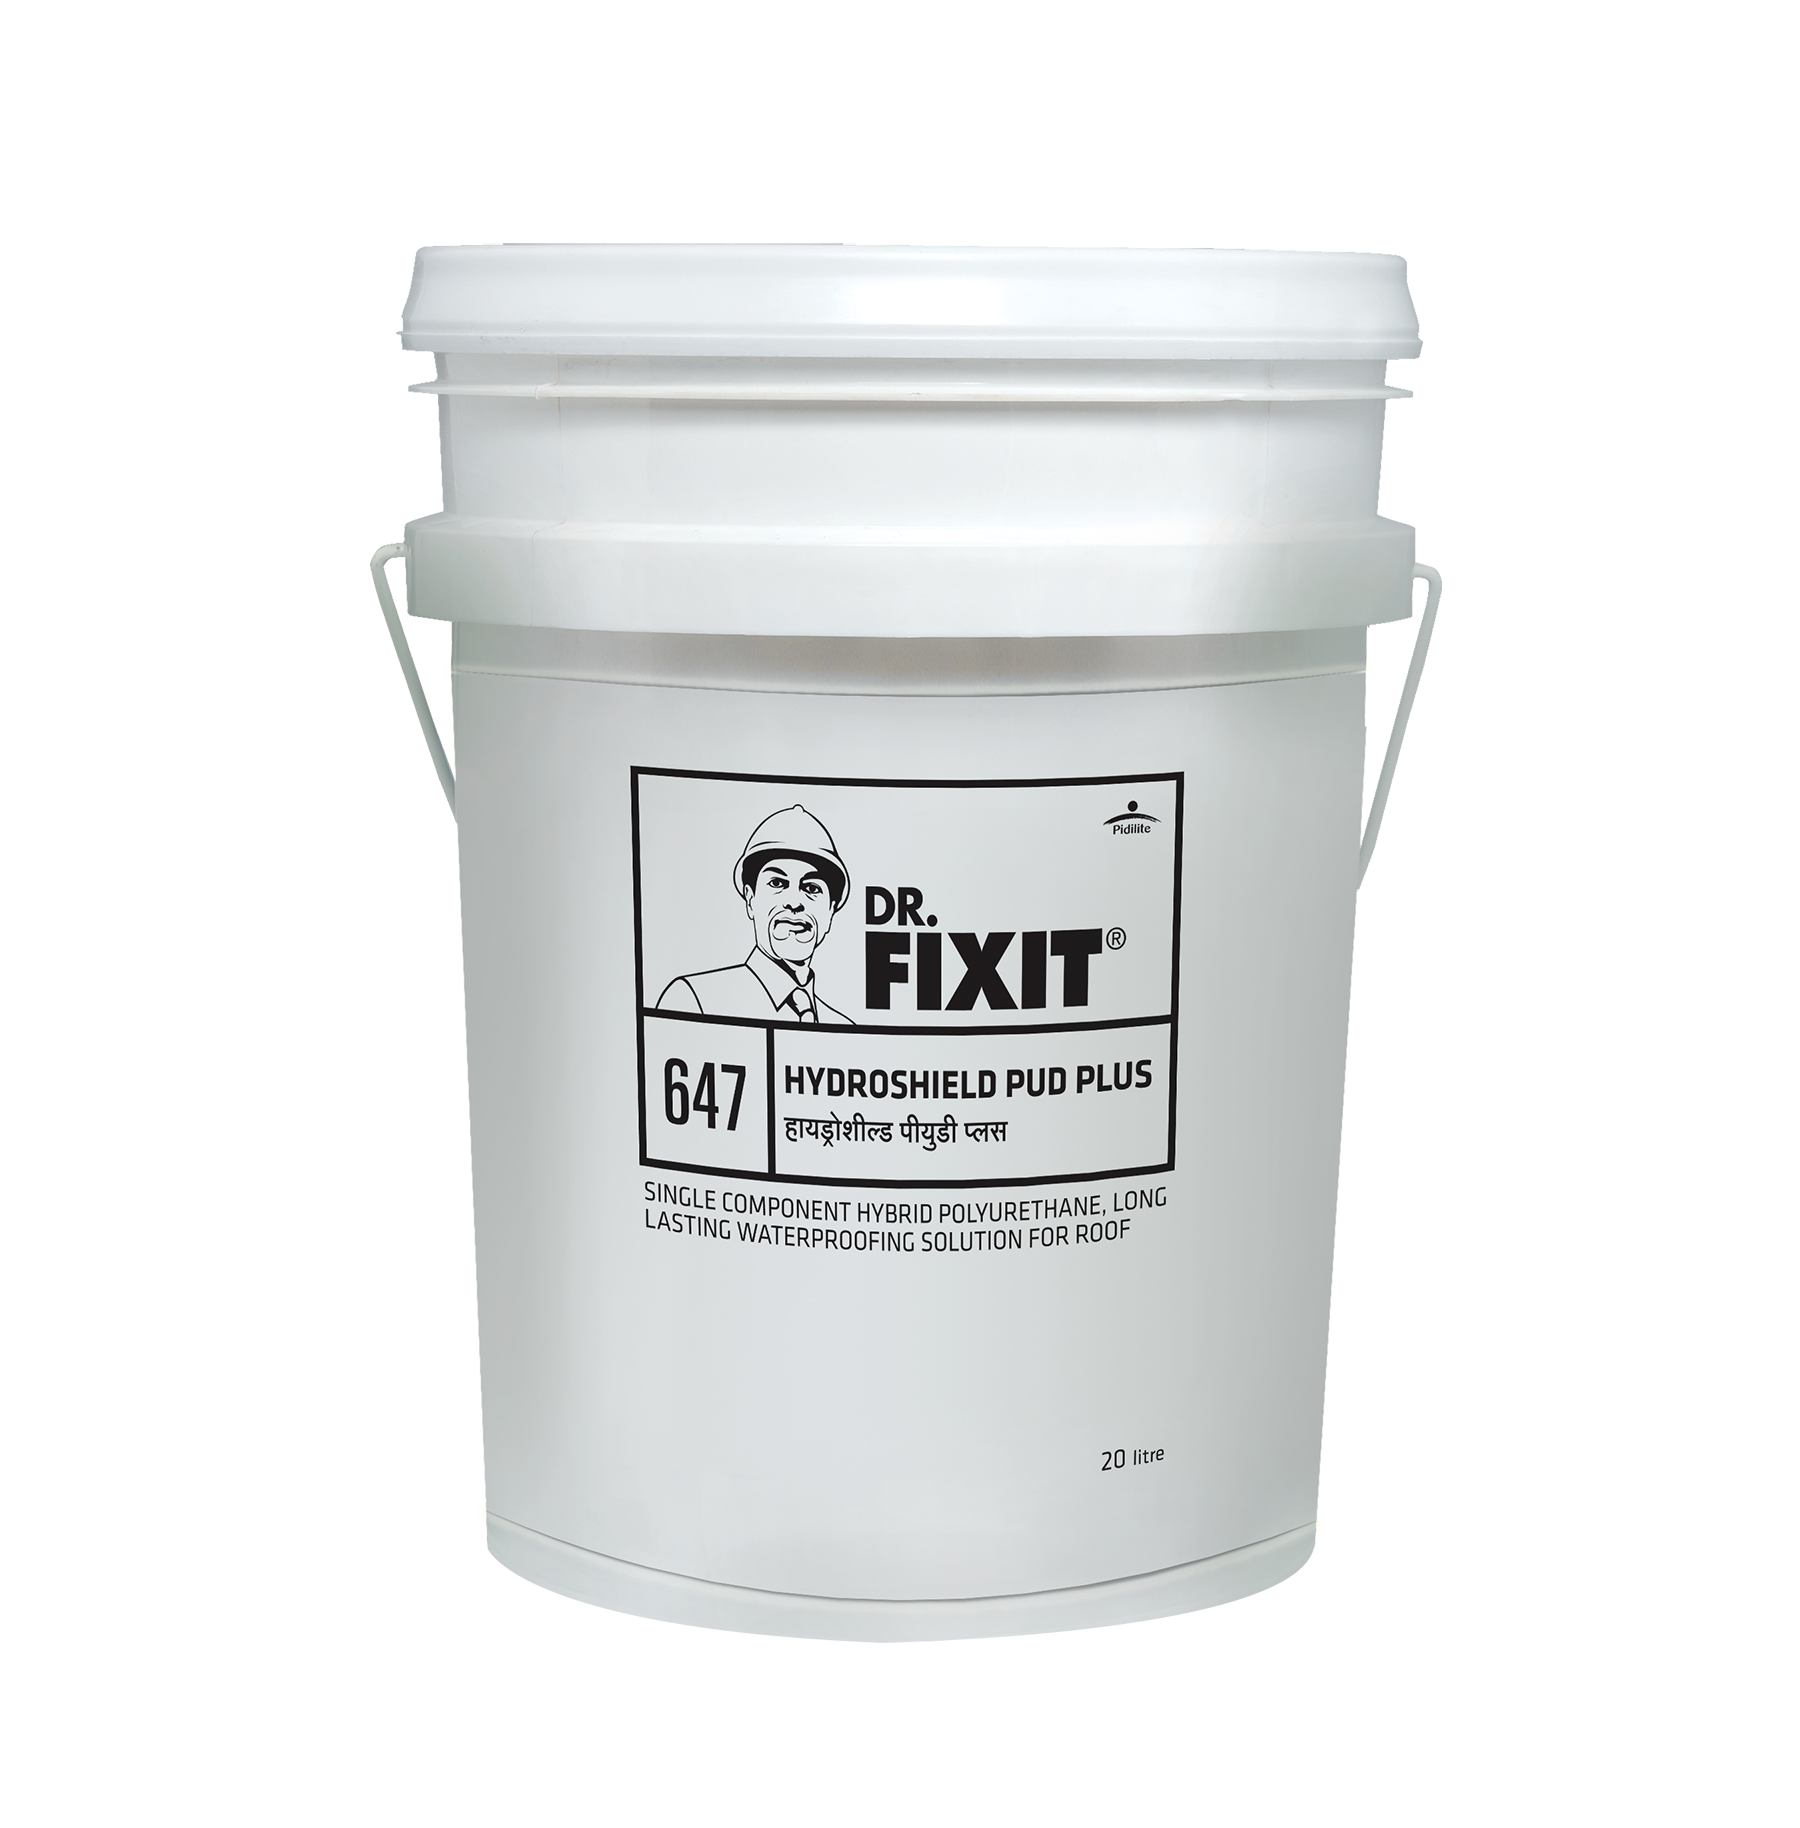 Dr Fixit Hydroshield Pud Plus Green Rating For Integrated Habitat Assesment